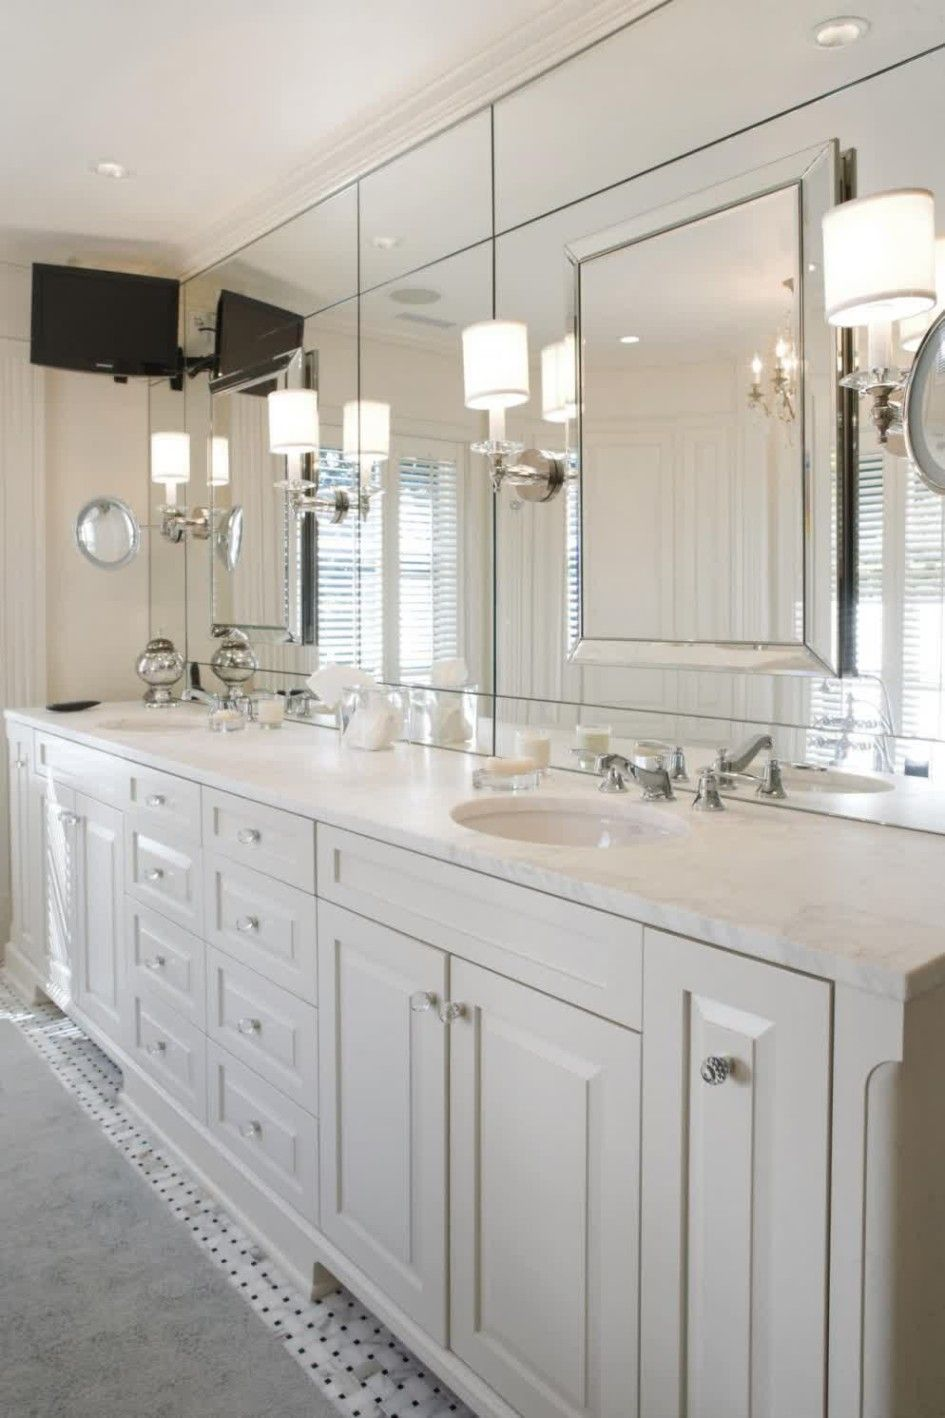 Bathroom Ideas  Modern Bathroom Wall Sconces With Large Frameless Mirror  Above Double Sink Bathroom VanityBathroom Ideas  Modern Bathroom Wall Sconces With Large Frameless  . Large Double Sink Bathroom Vanity. Home Design Ideas